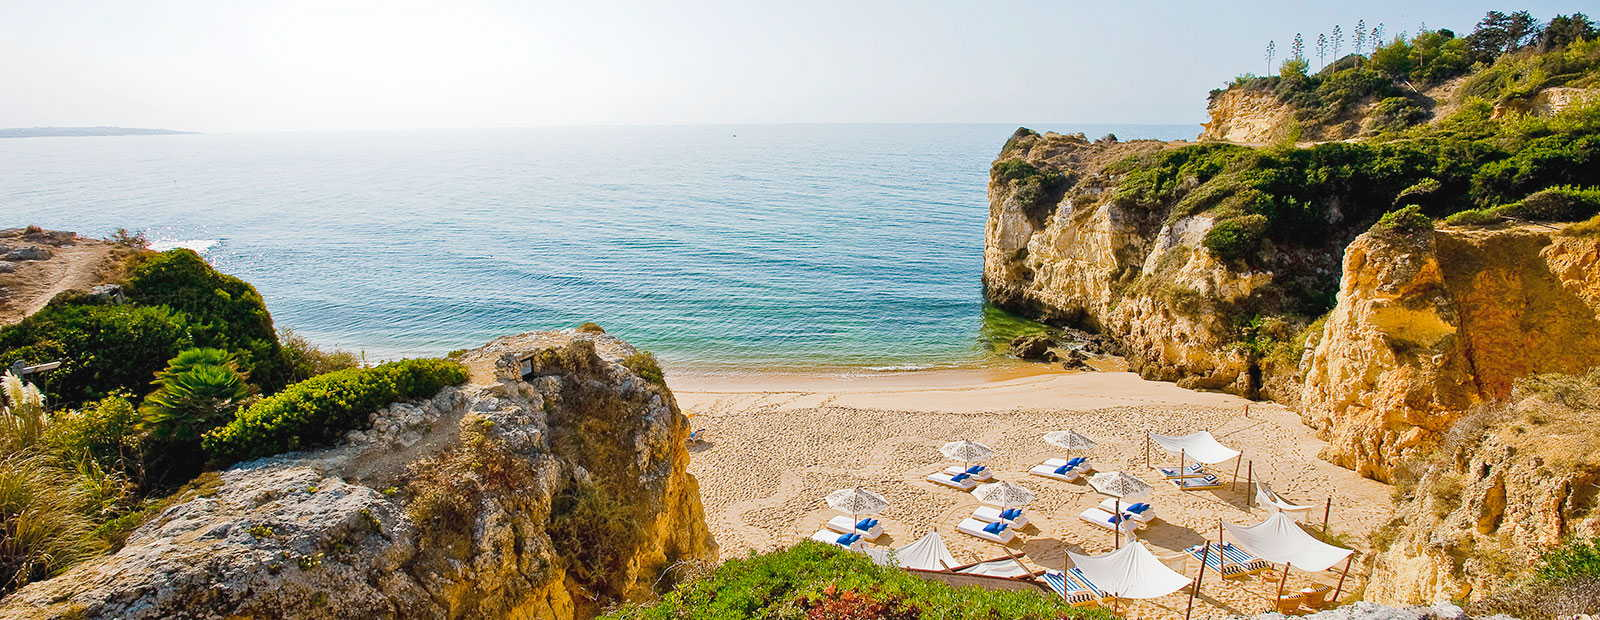 Exclusive holiday homes at the Algarve